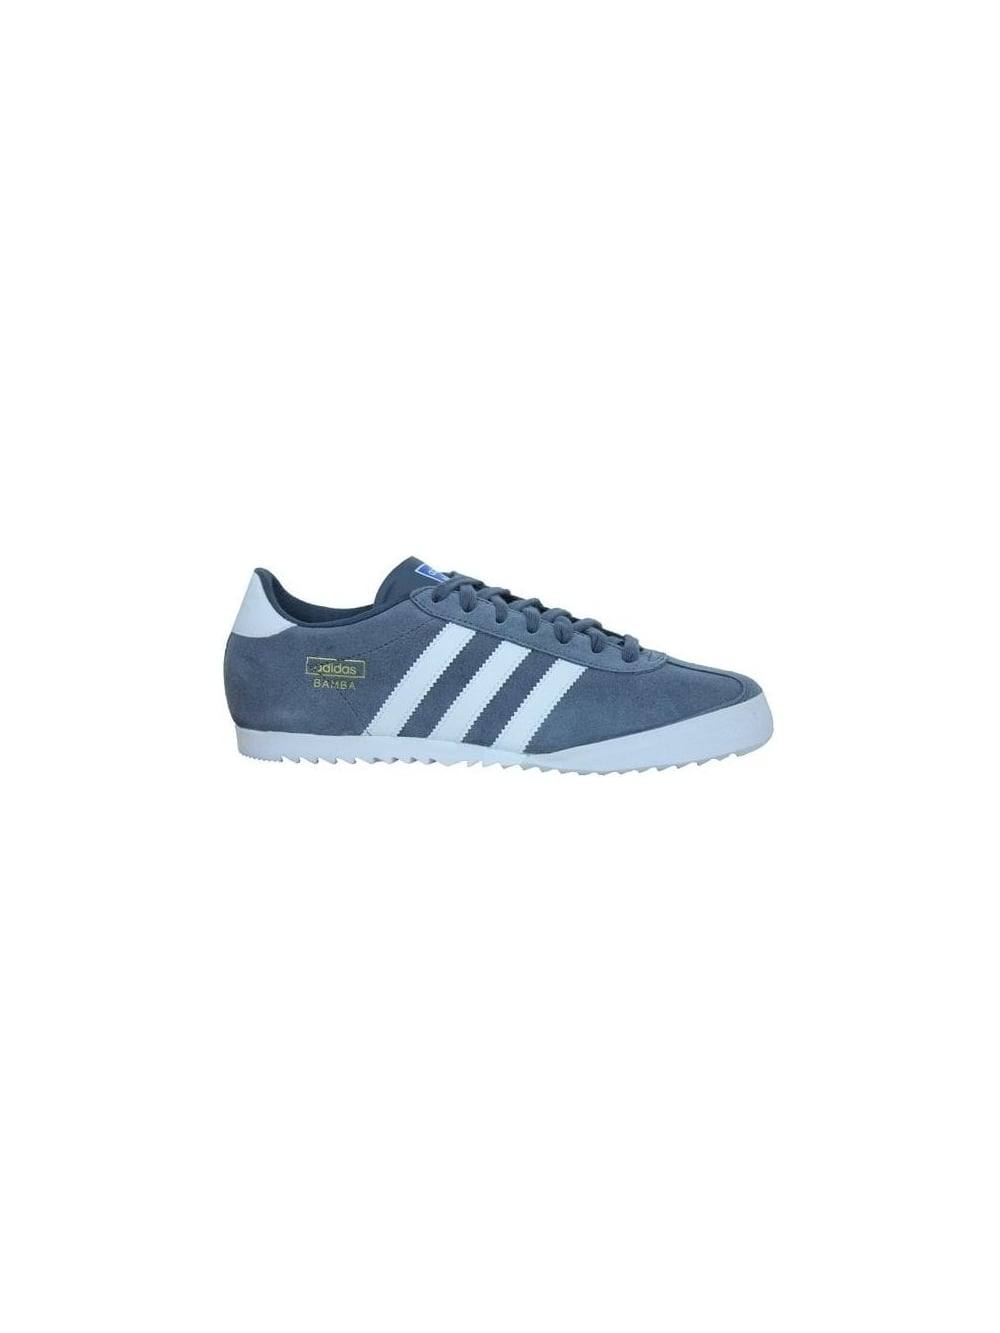 adidas Originals Bamba Trainers Onix